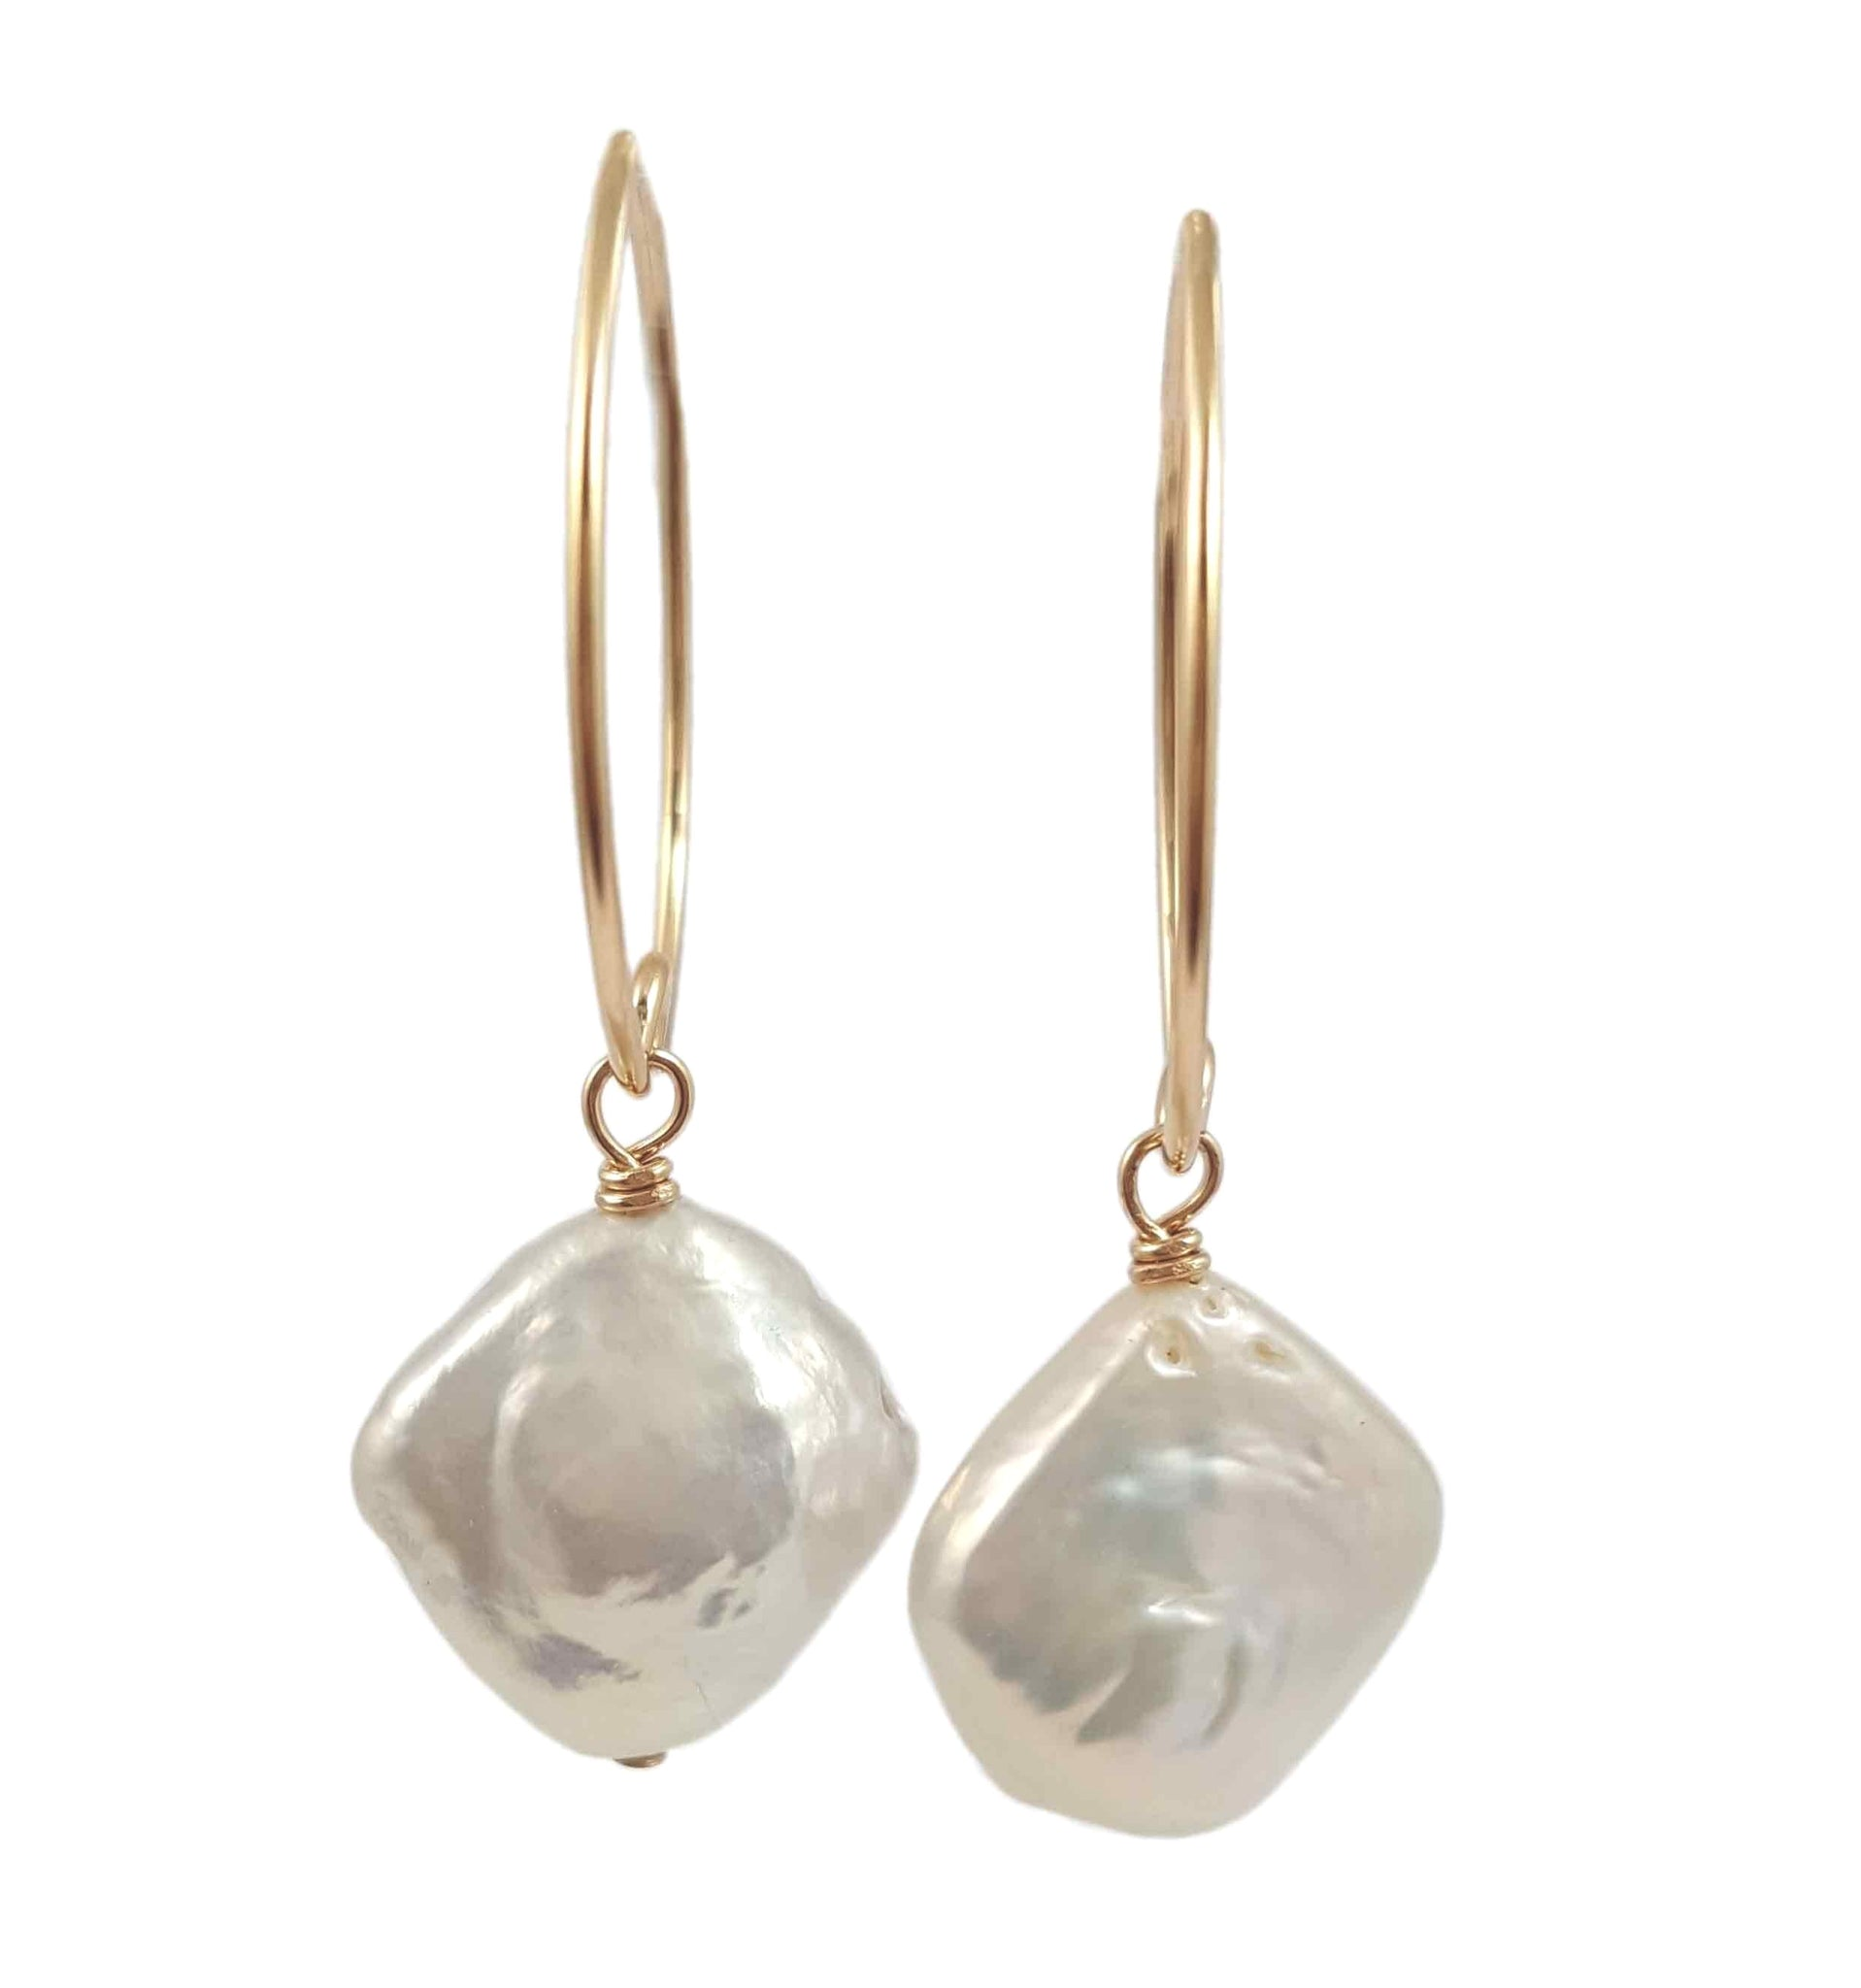 Elongated pearl drop earrings | Coco elegance